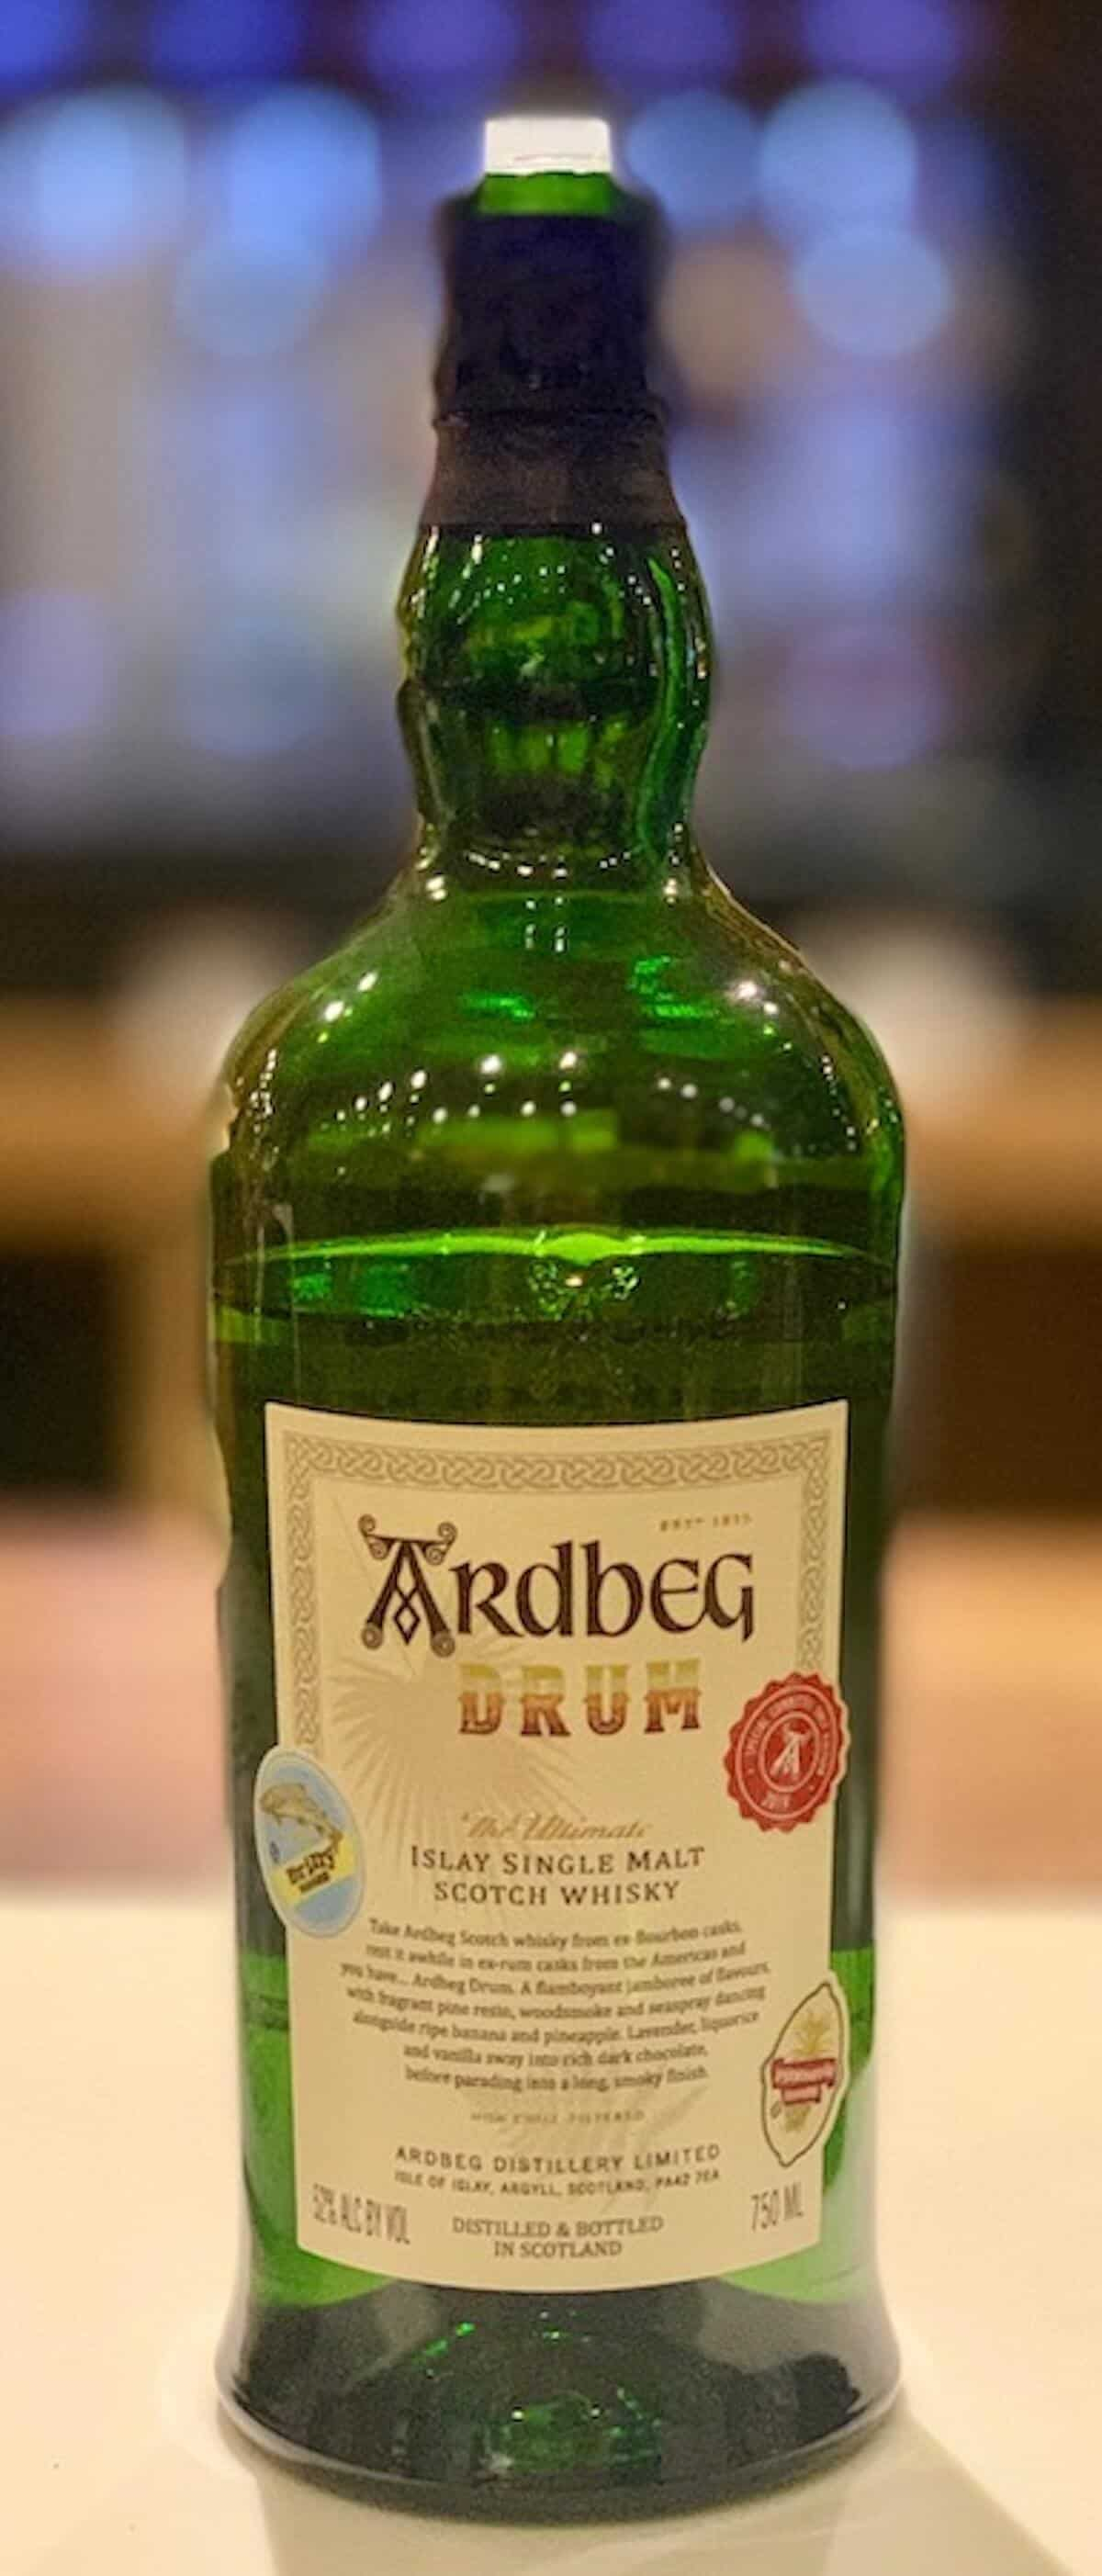 Ardbeg Drum in bottle